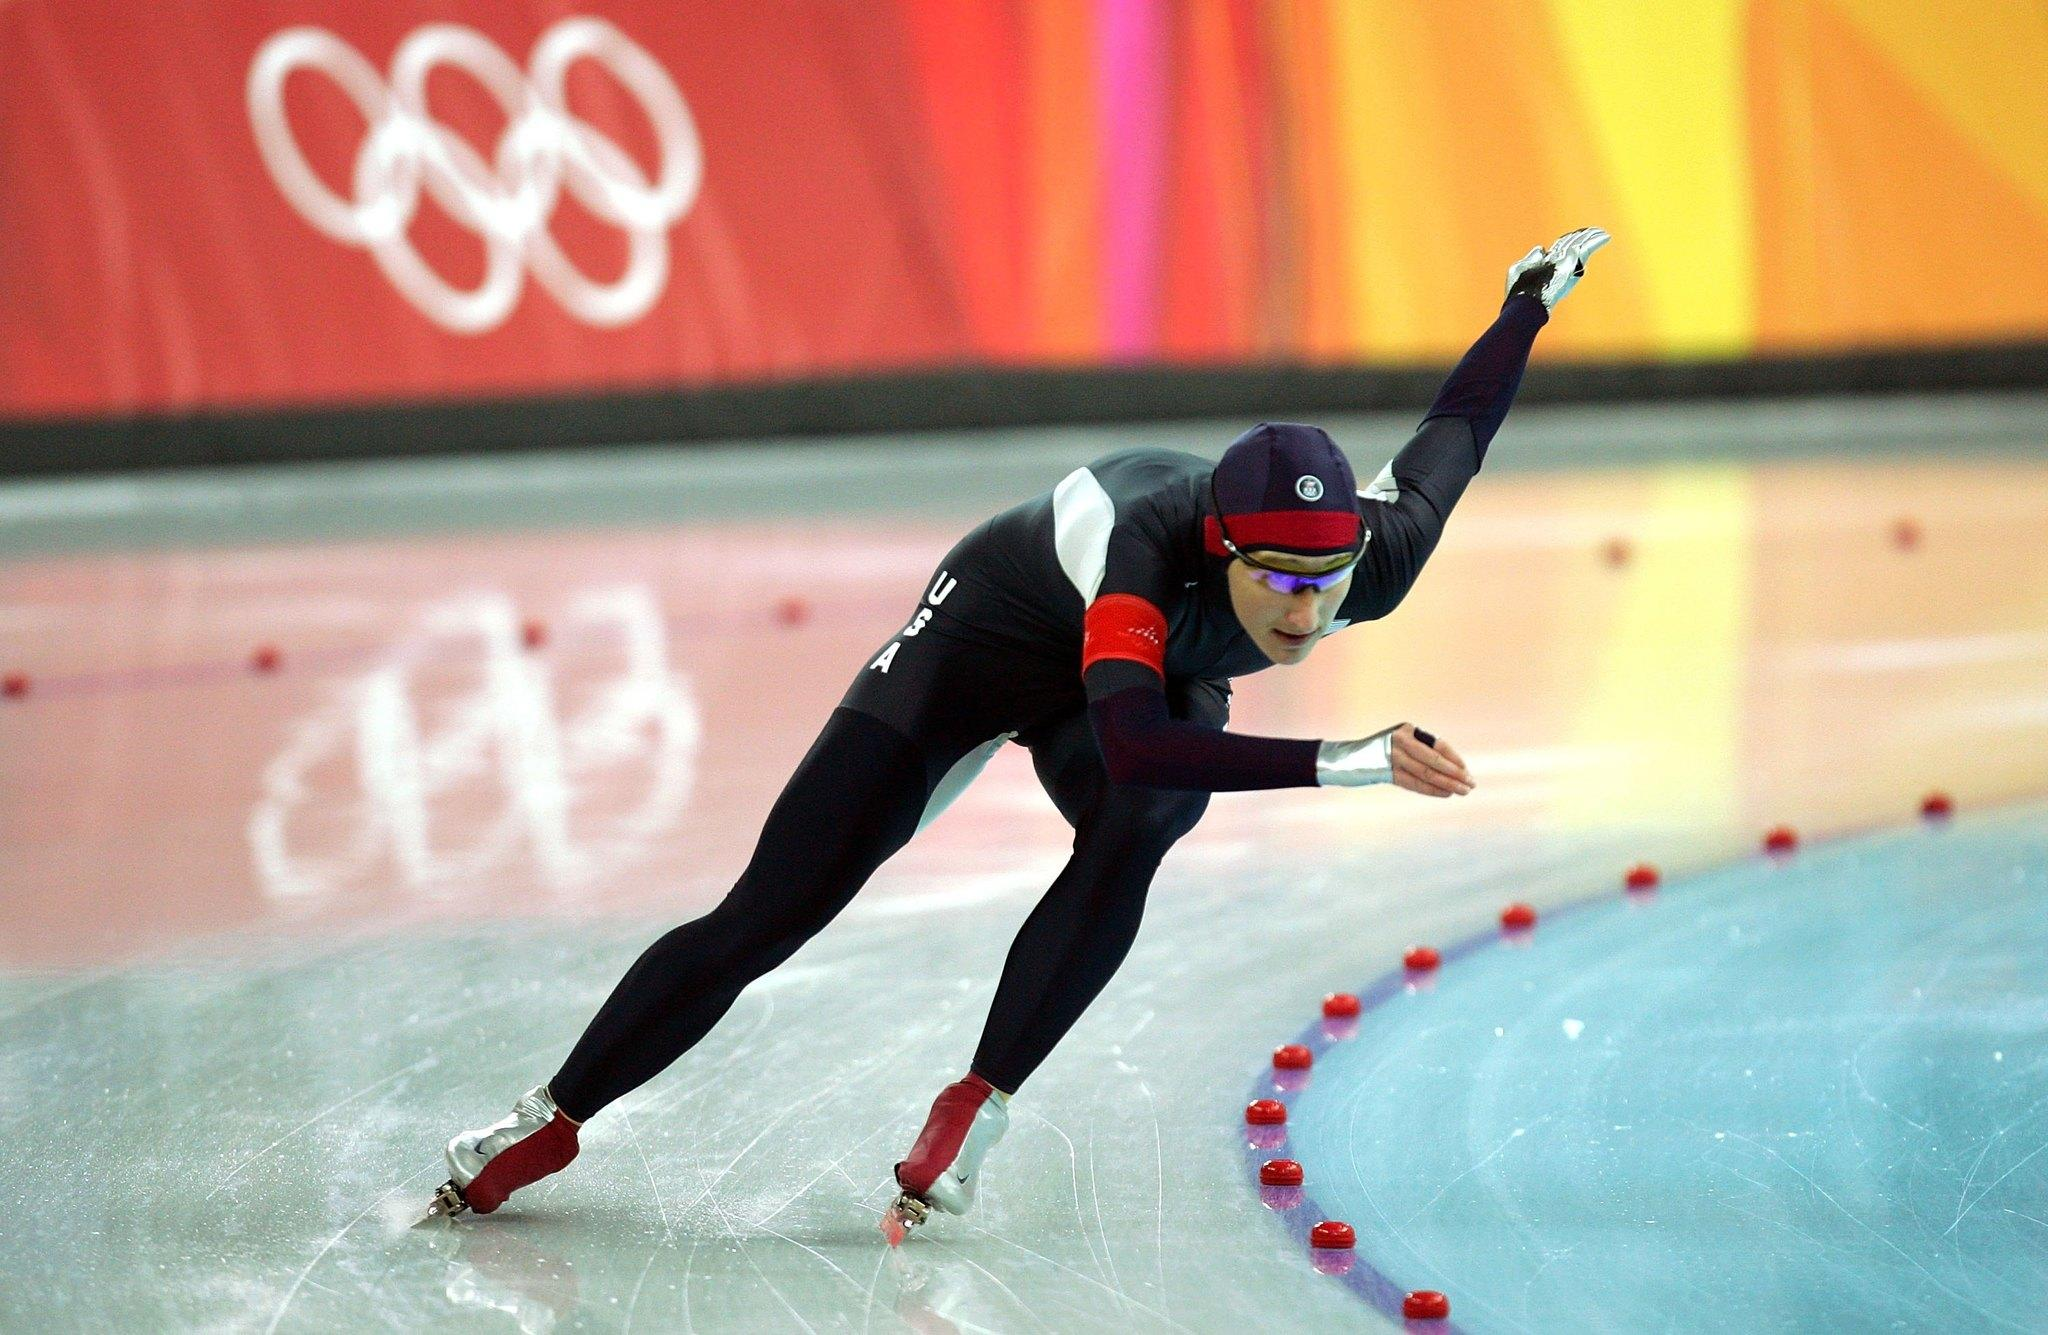 Speed skater Jennifer Rodriguez, who was born in Miami and attended Palmetto High School, competed in the 2002 Olympics.